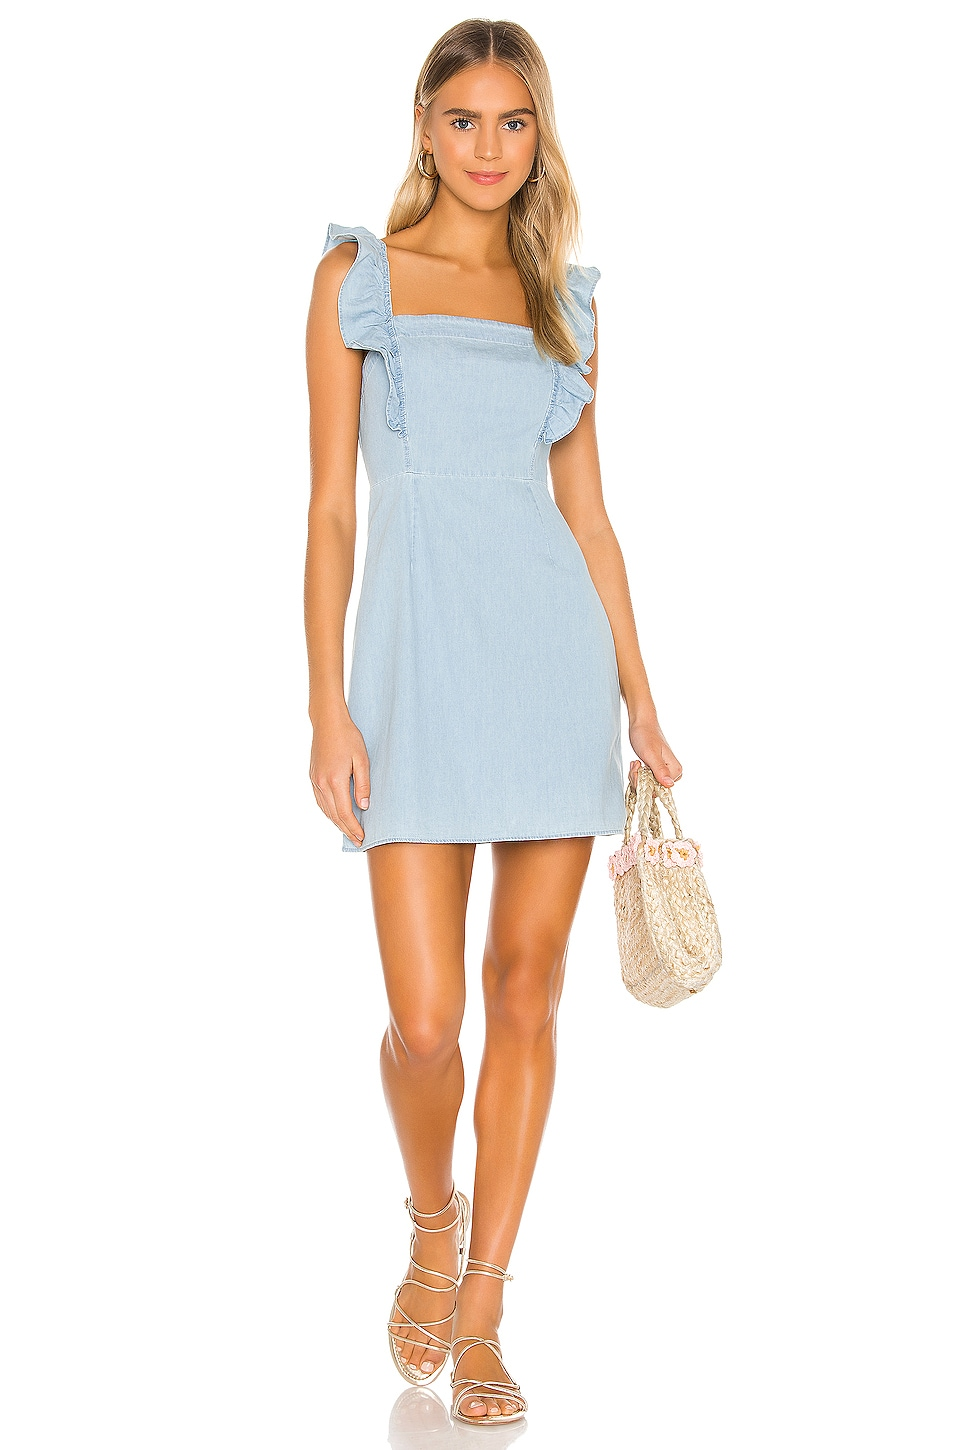 JACK by BB Dakota Chambray All Day Dress             BB Dakota                                                                                                       CA$ 110.94 11